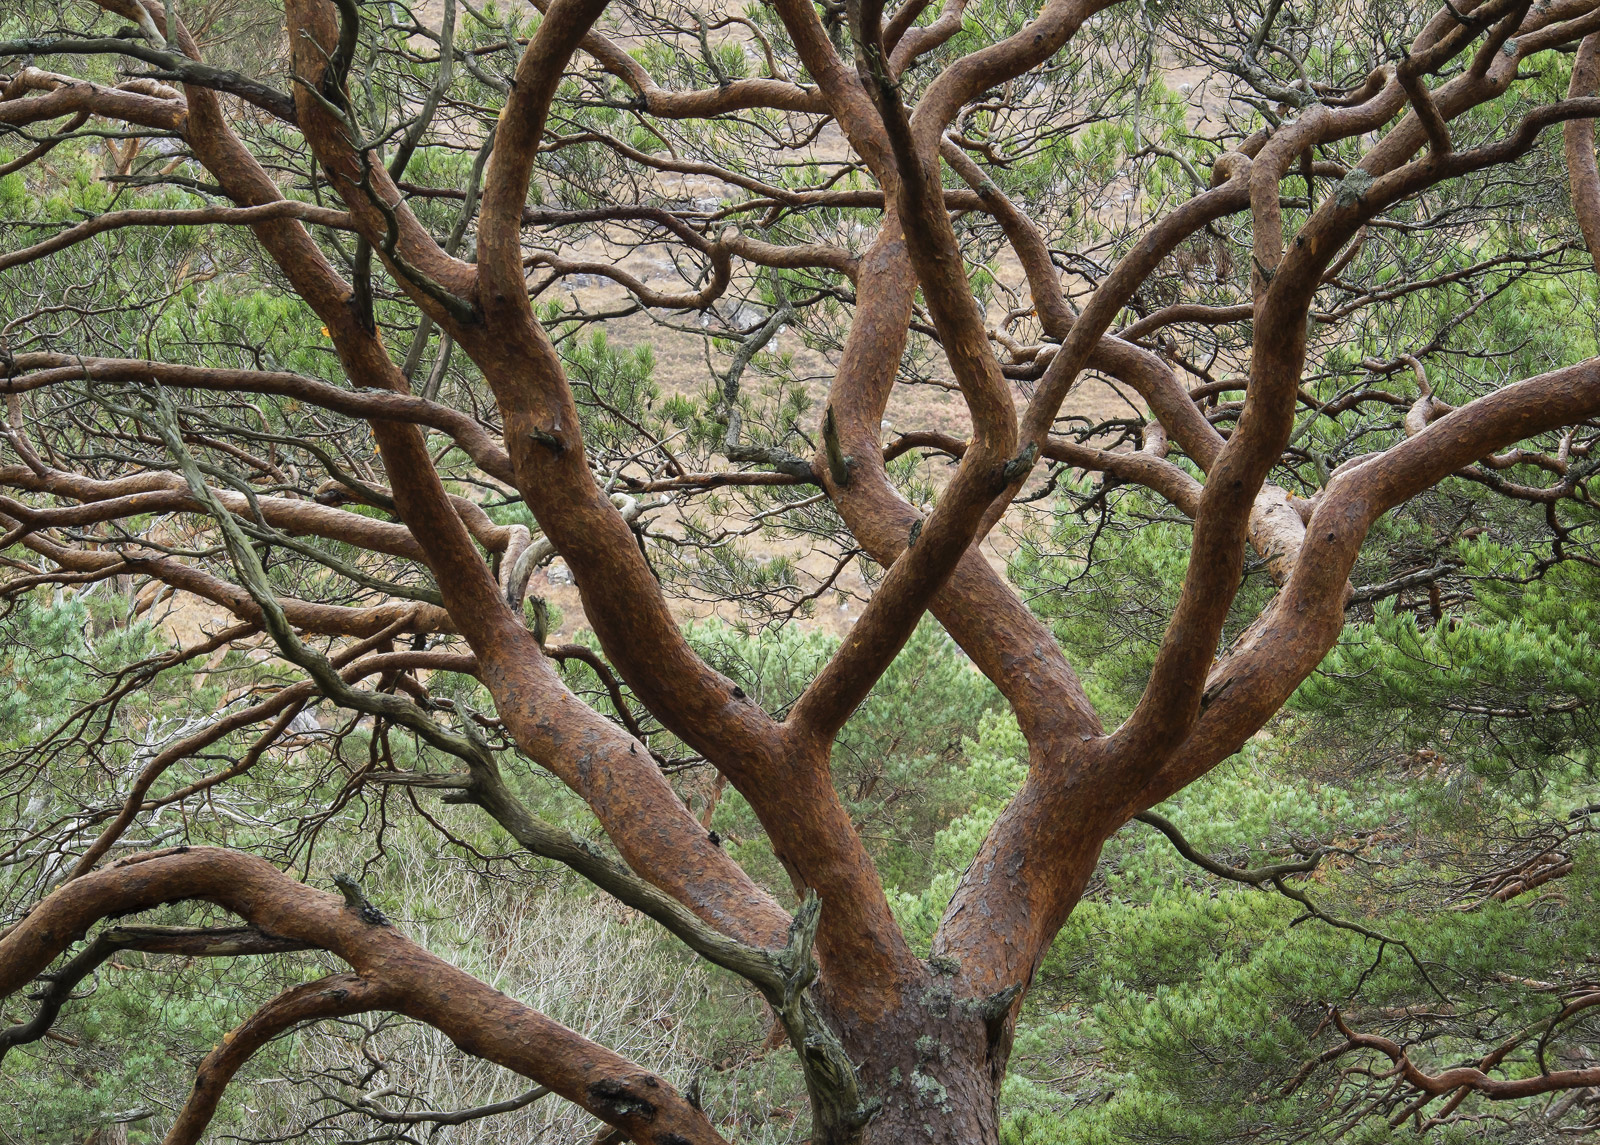 Limb From Limb, Grudie Bridge, Torridon, Scotland, native, Scots Pine, wether, shpes, branches, red, bark, green, pine n, photo